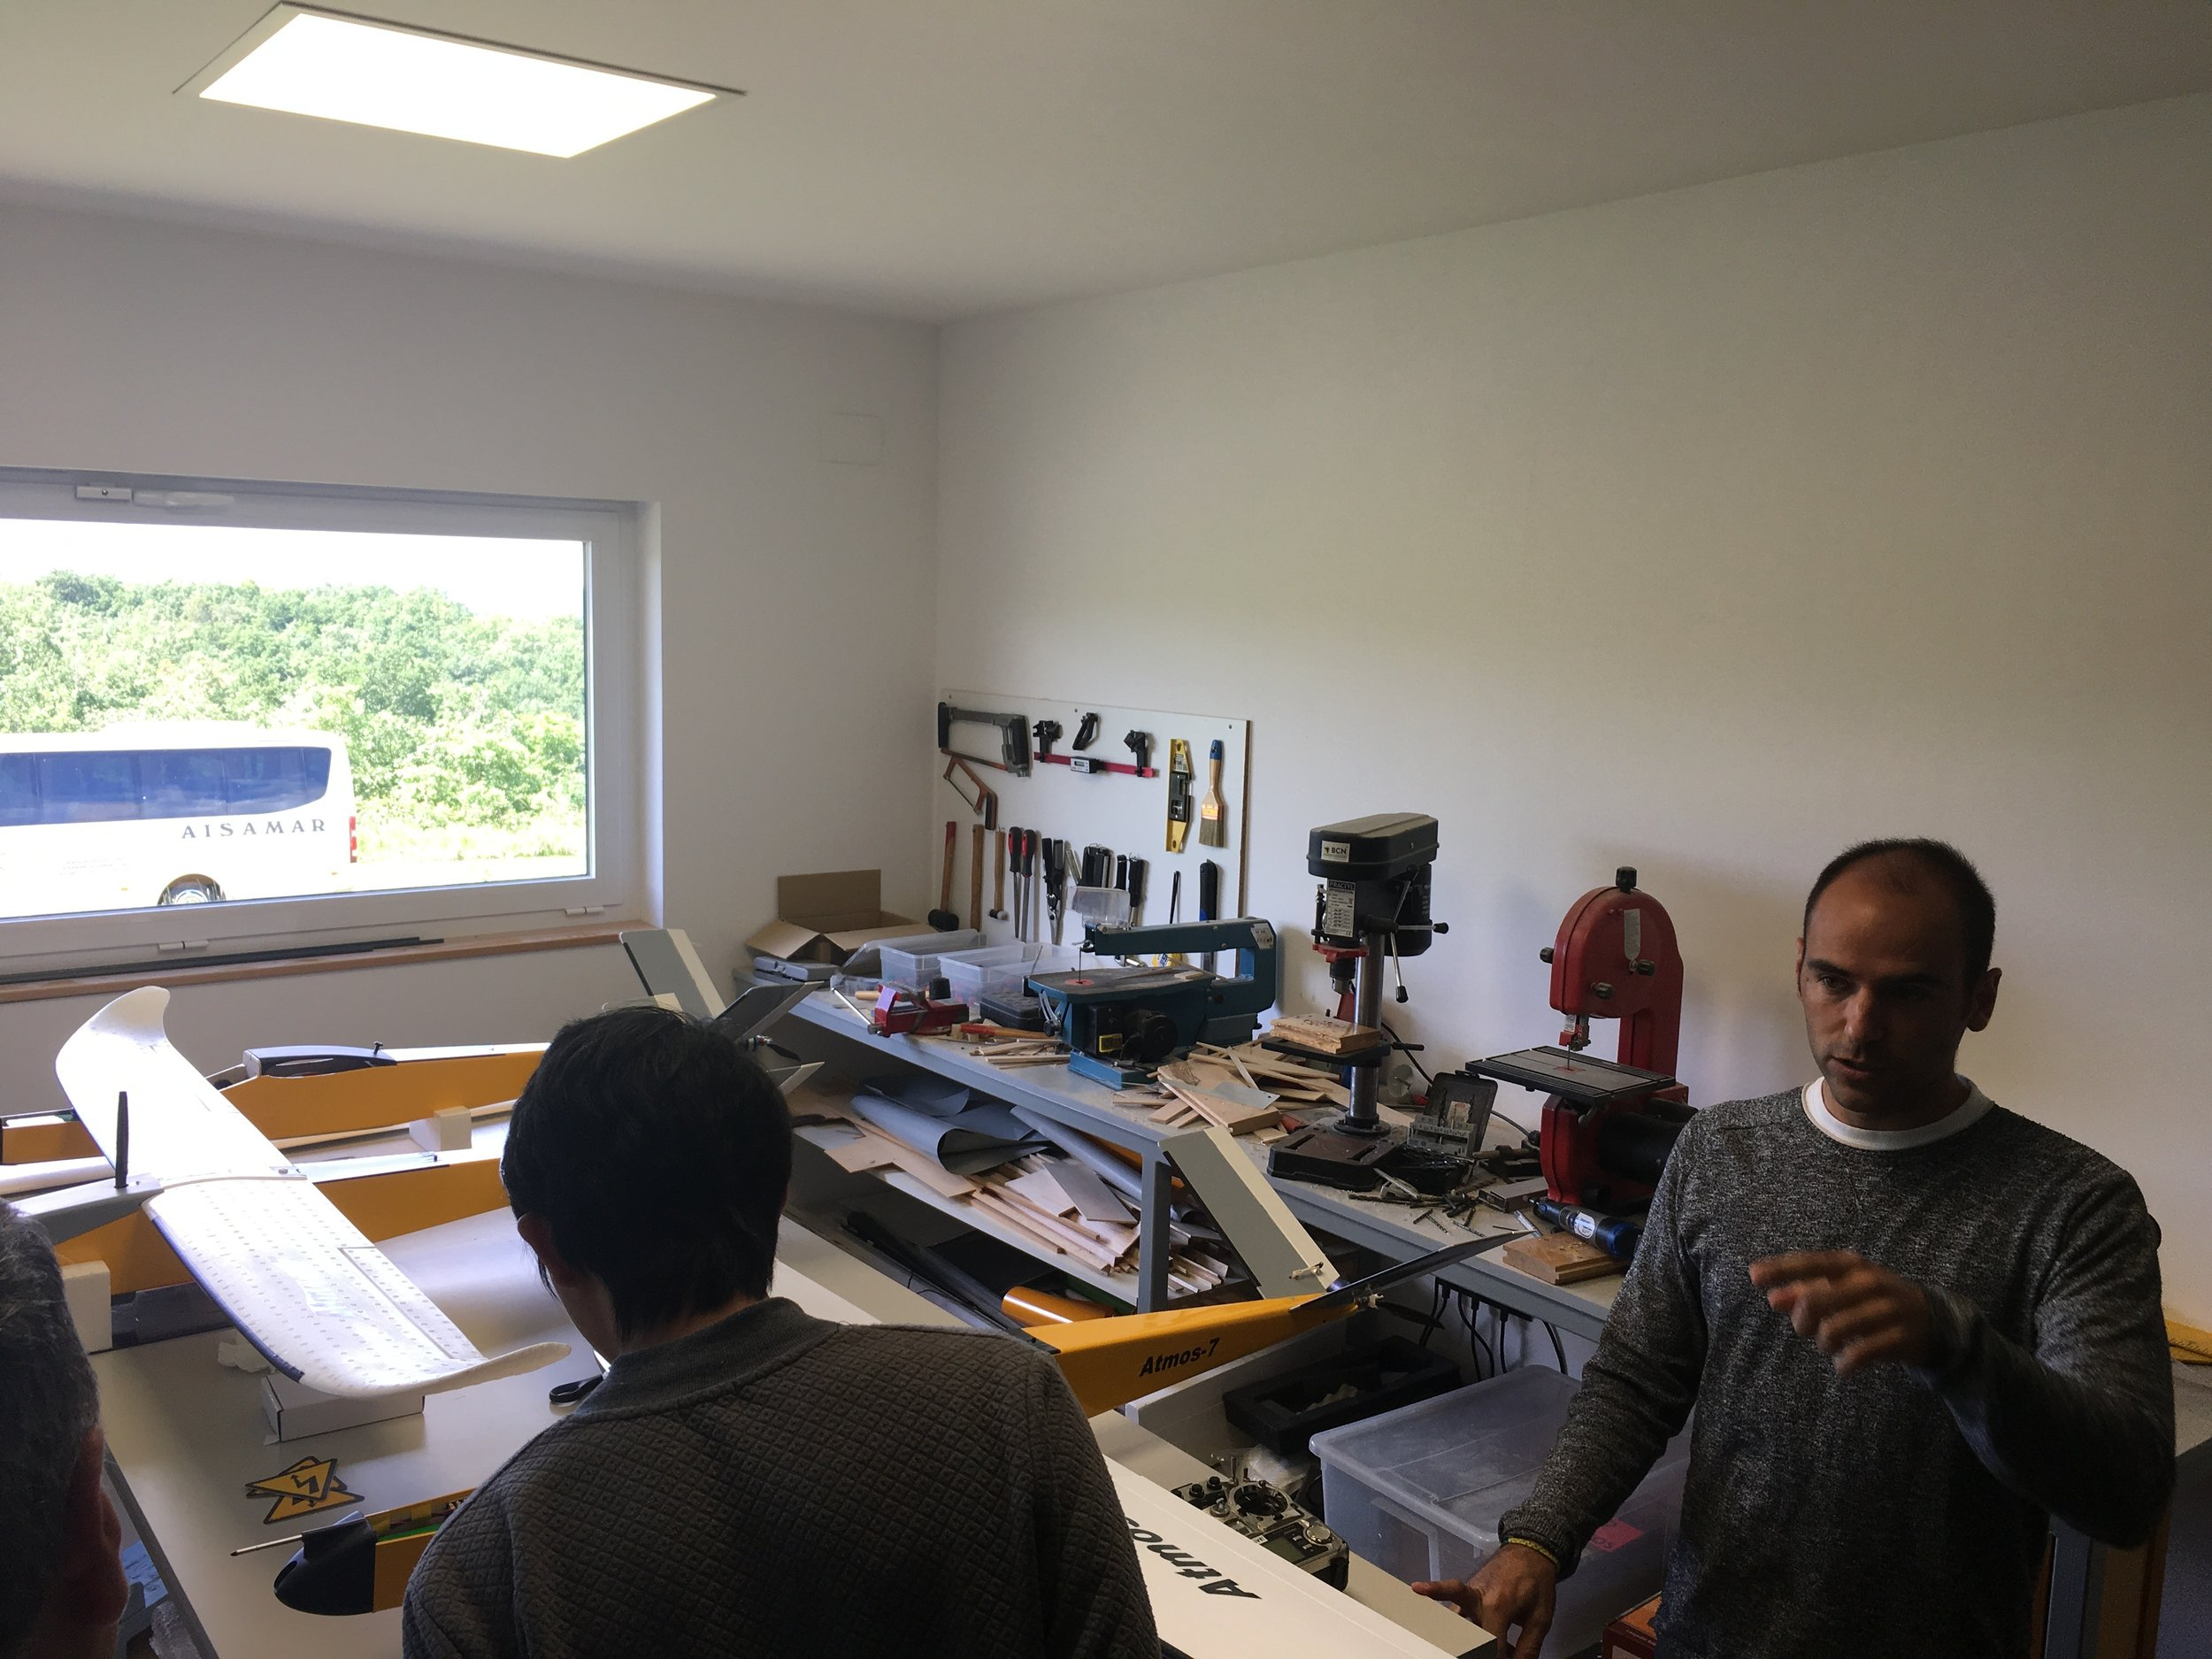 Prototyping  Access to the latest drones and prototyping tools to develop the company